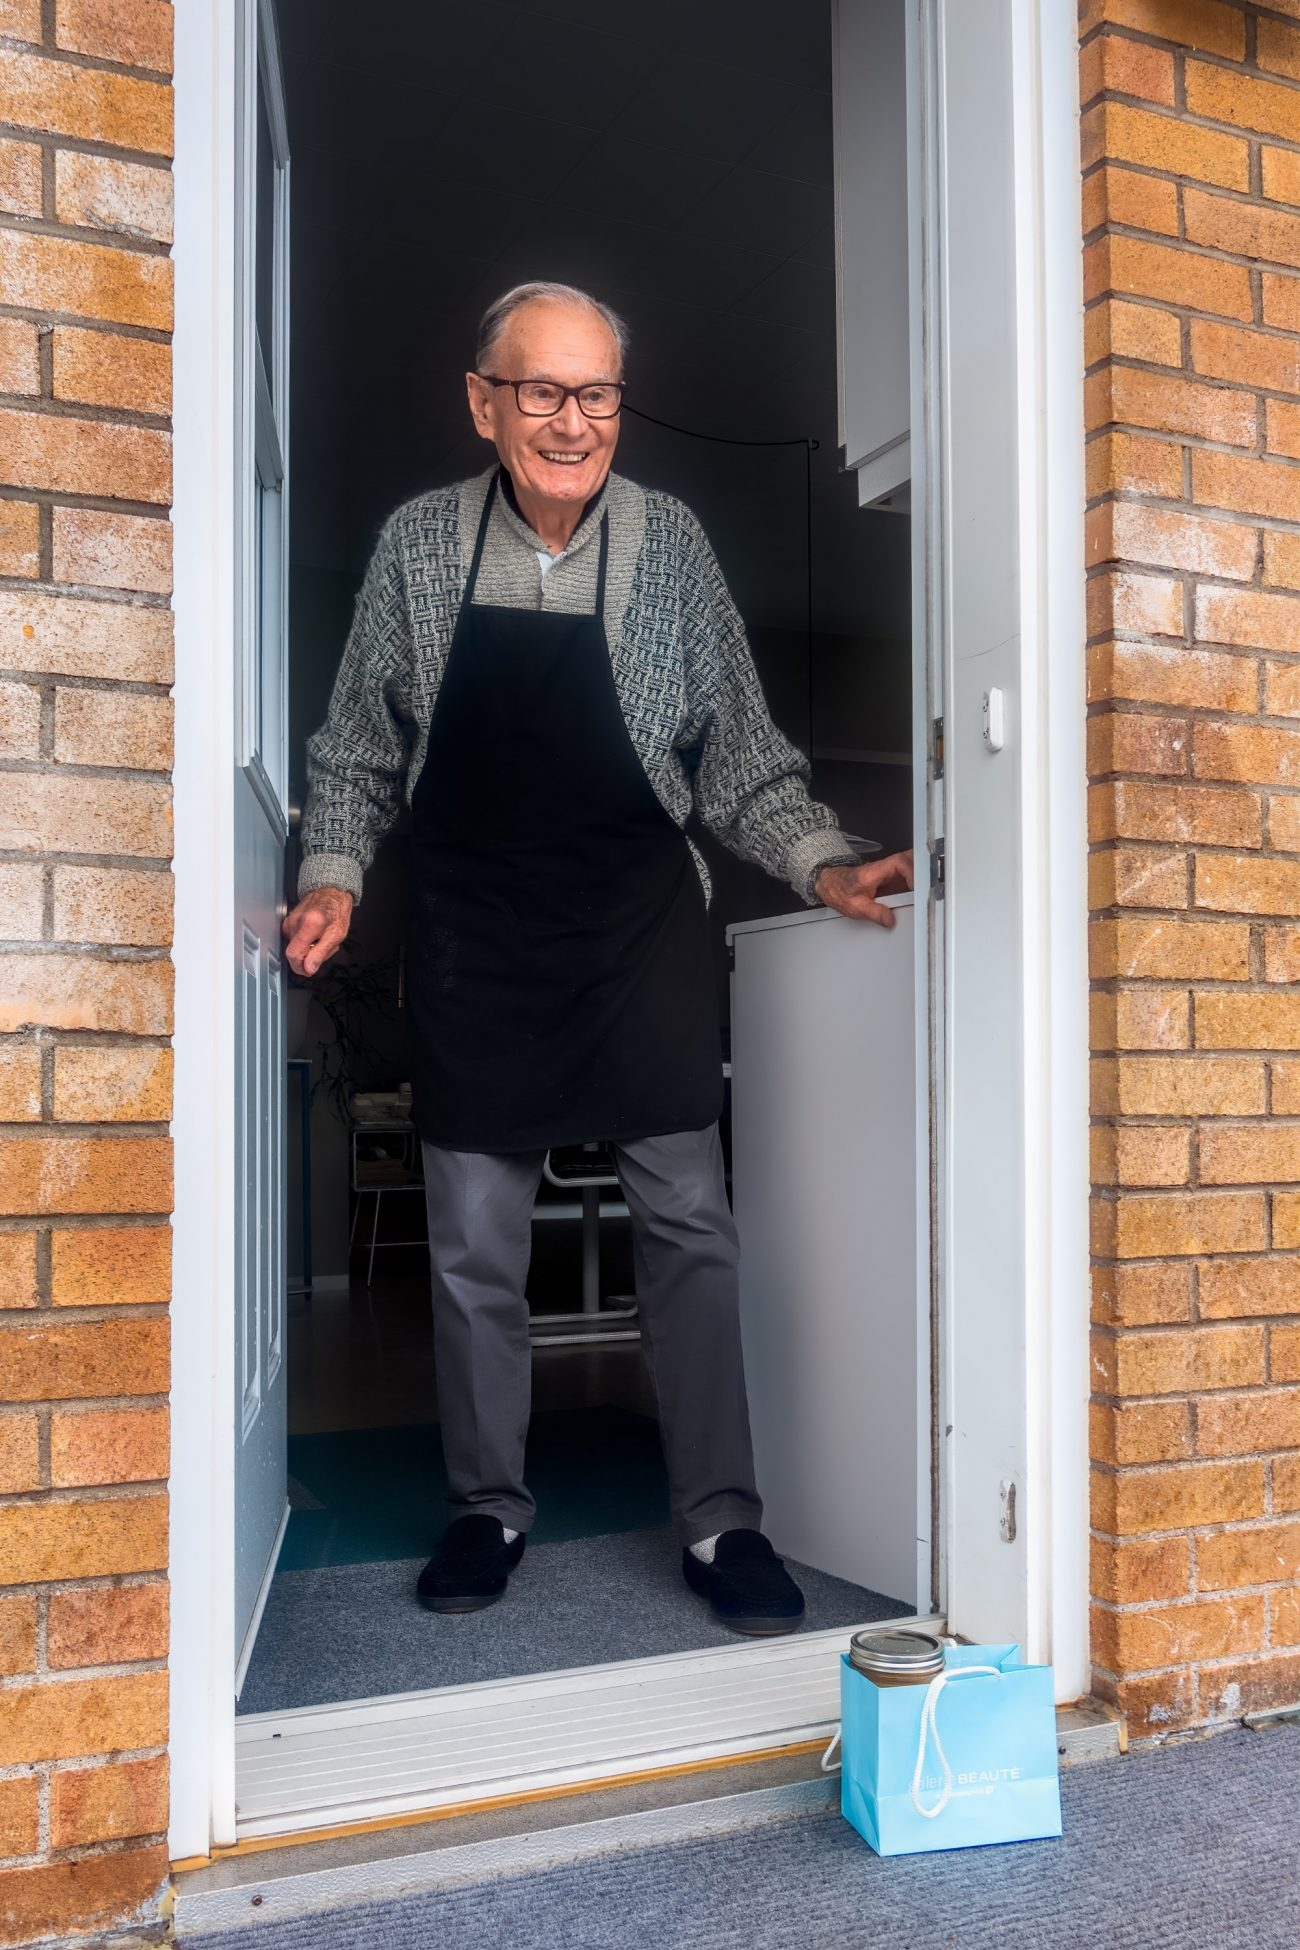 Grandfather is greeted at front door with a gift.